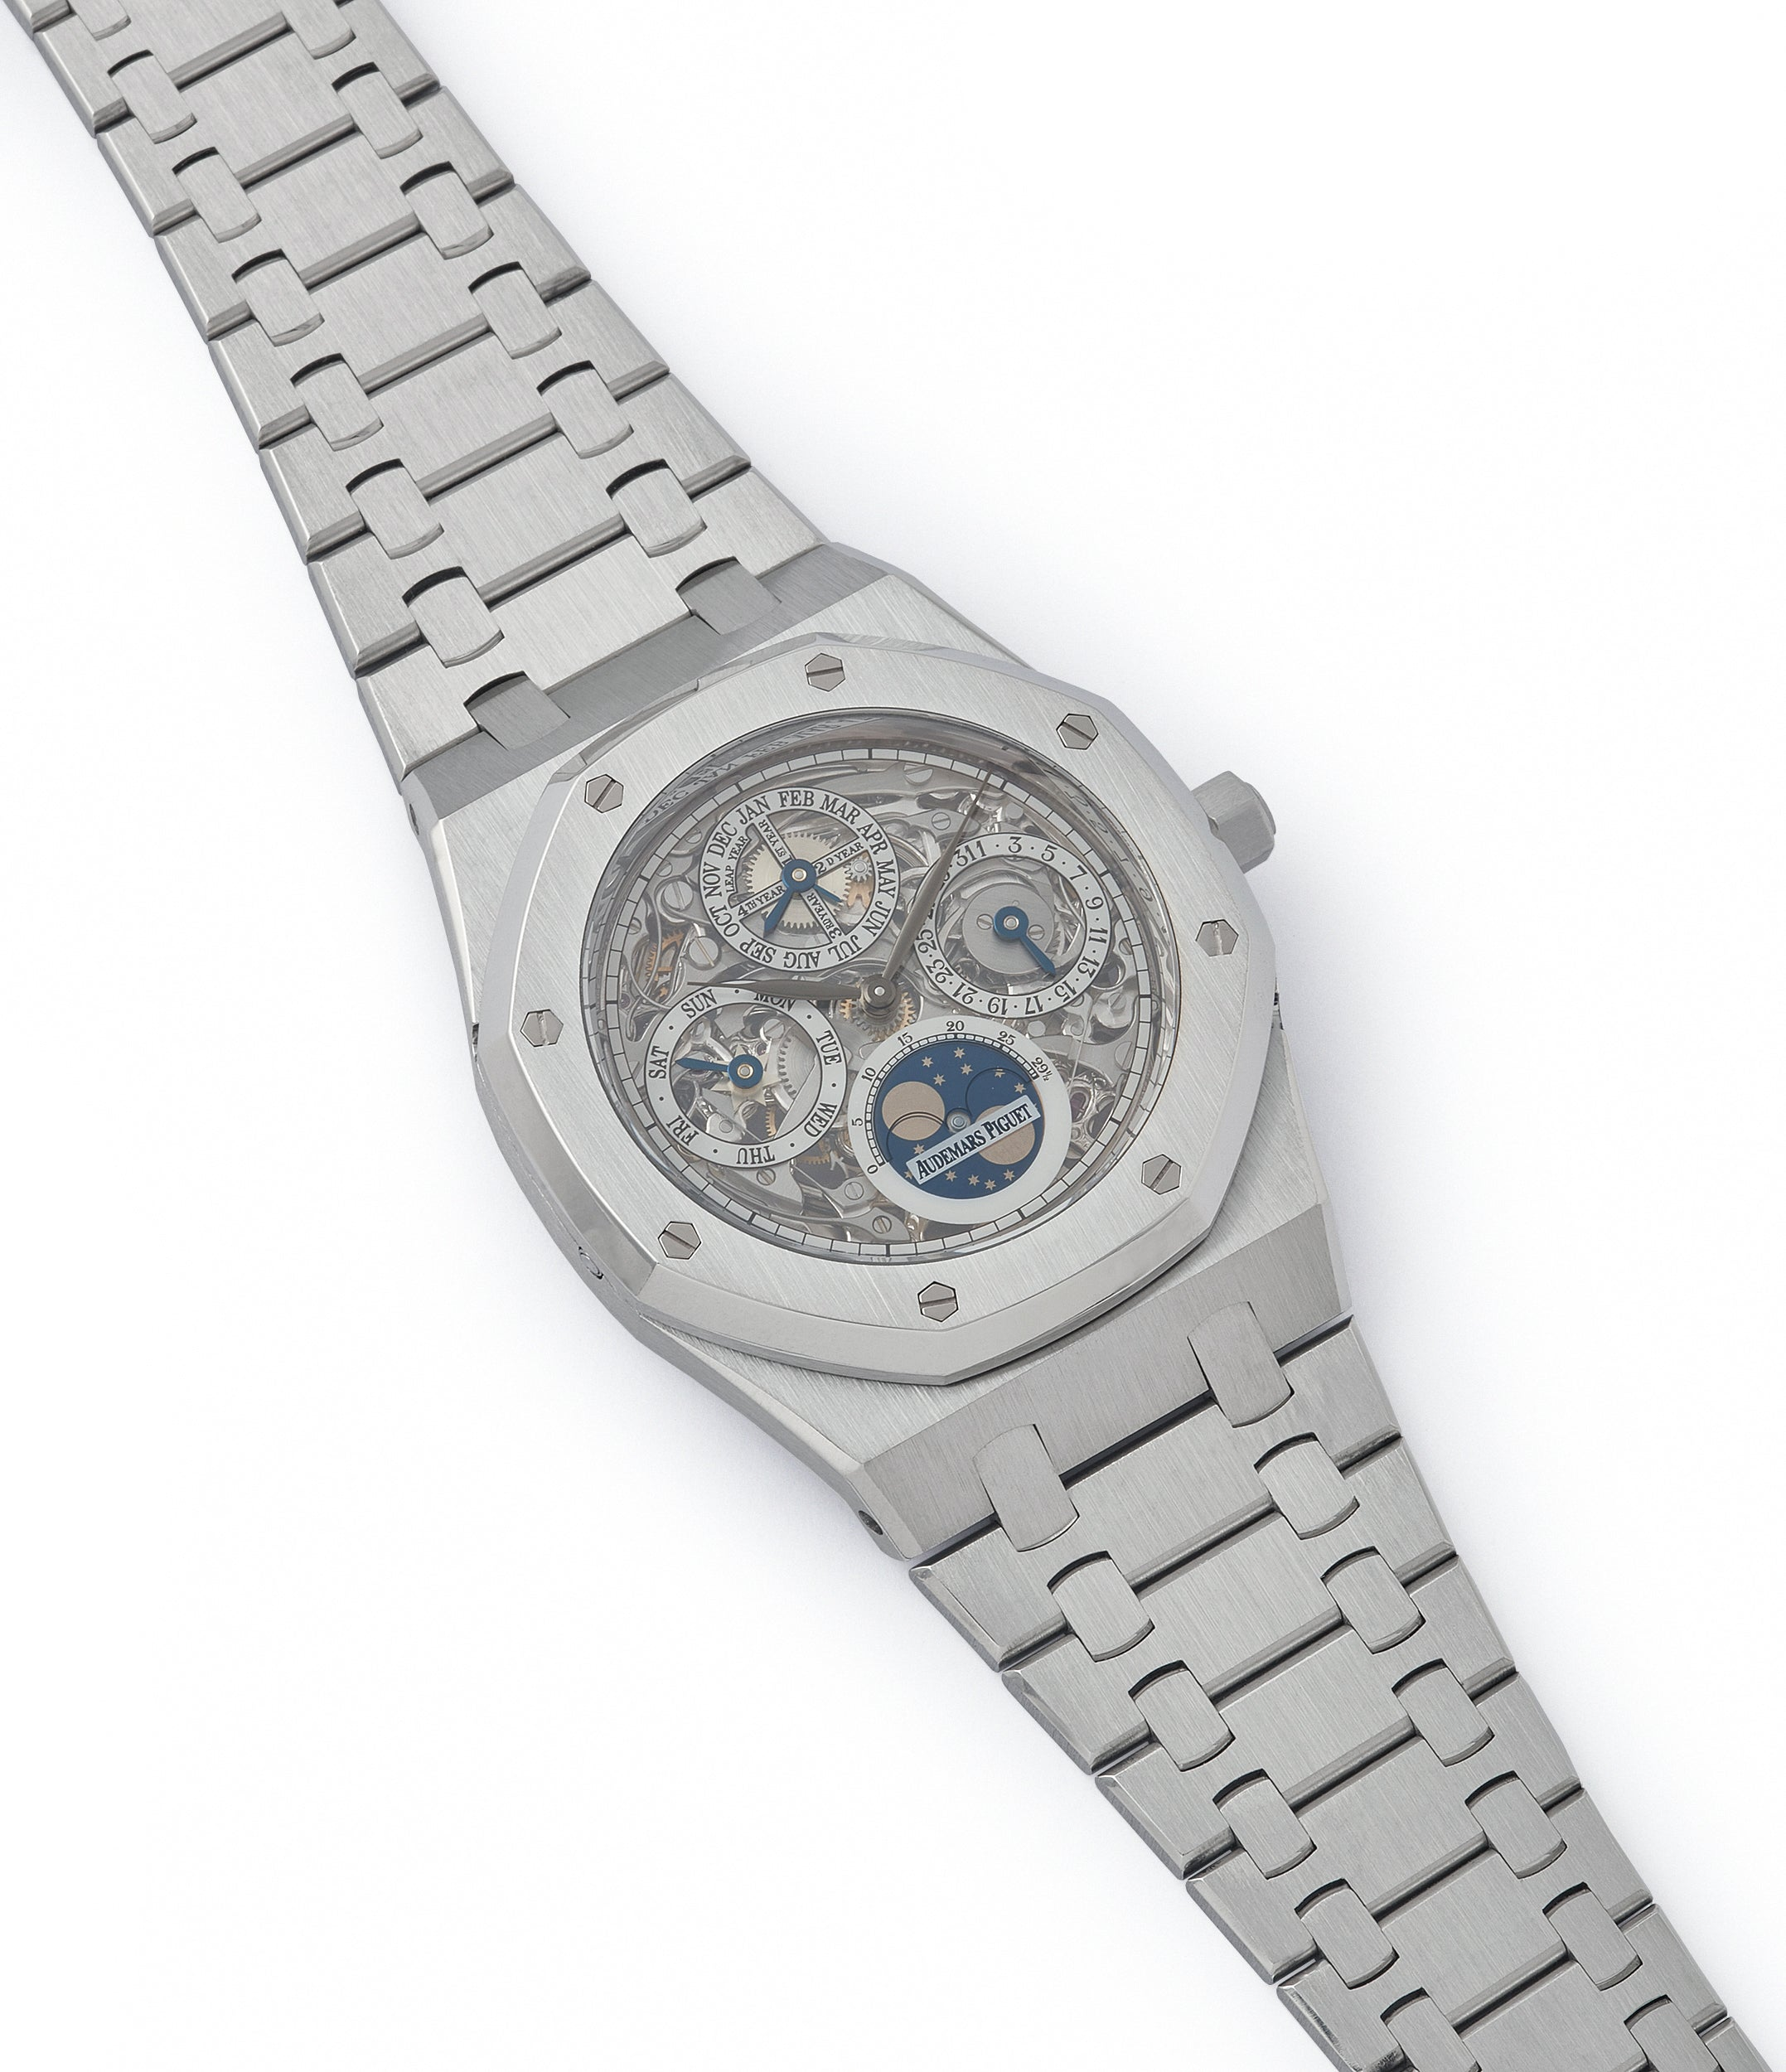 selling Audemars Piguet Royal Oak 25829PT perpetual calendar skeleton dial platinum full set pre-owned watch for sale online at A Collected Man London UK specialist of rare watches